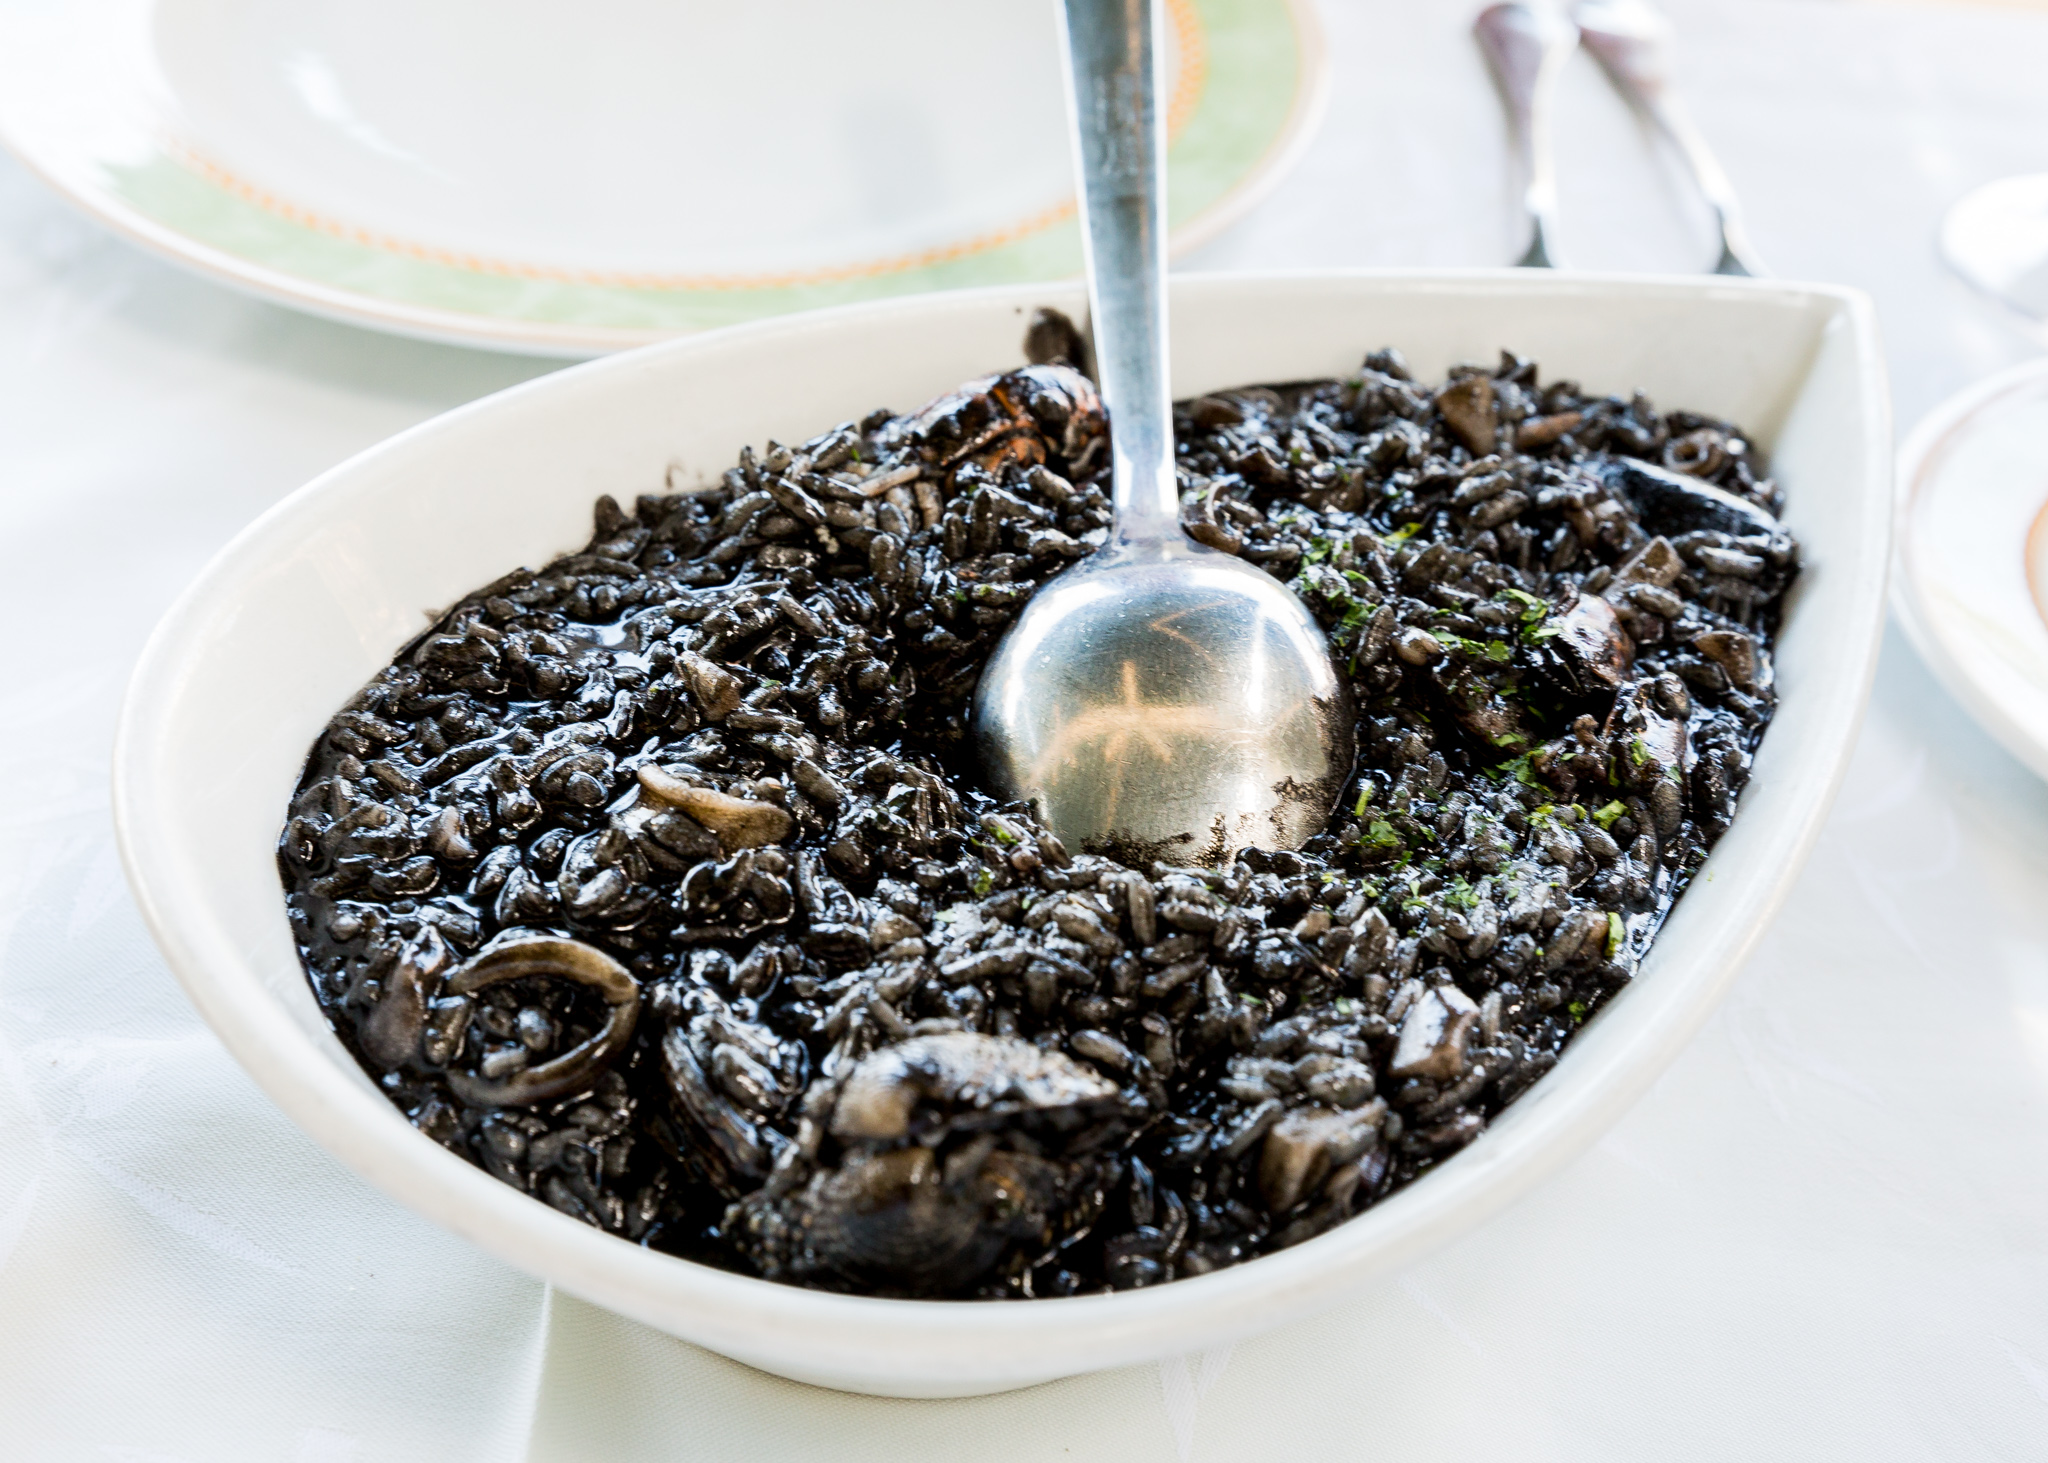 Kapetanova black rice